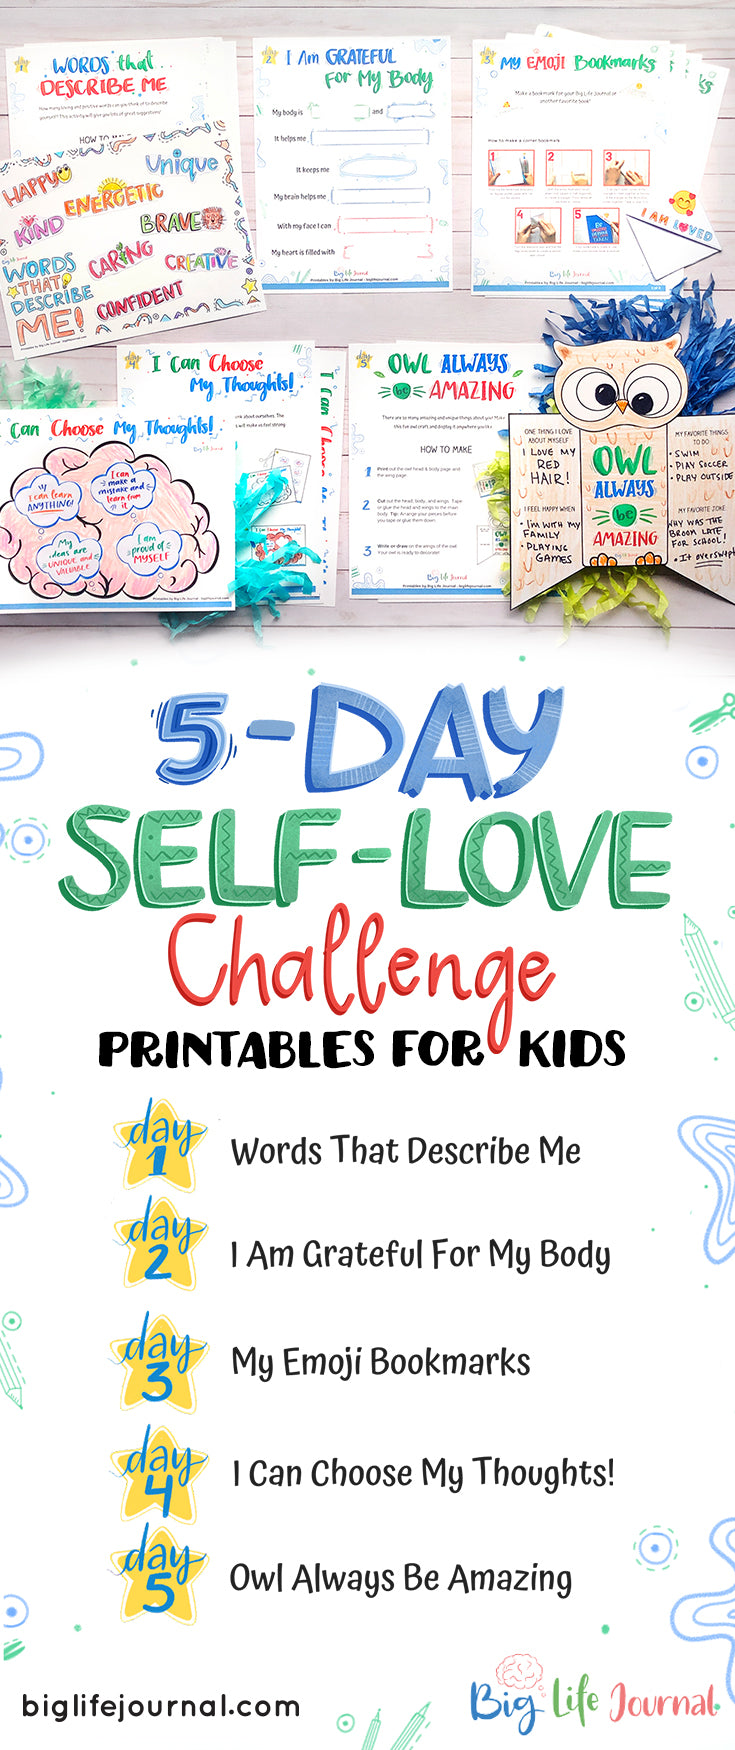 5-Day Self-Love Challenge for Children